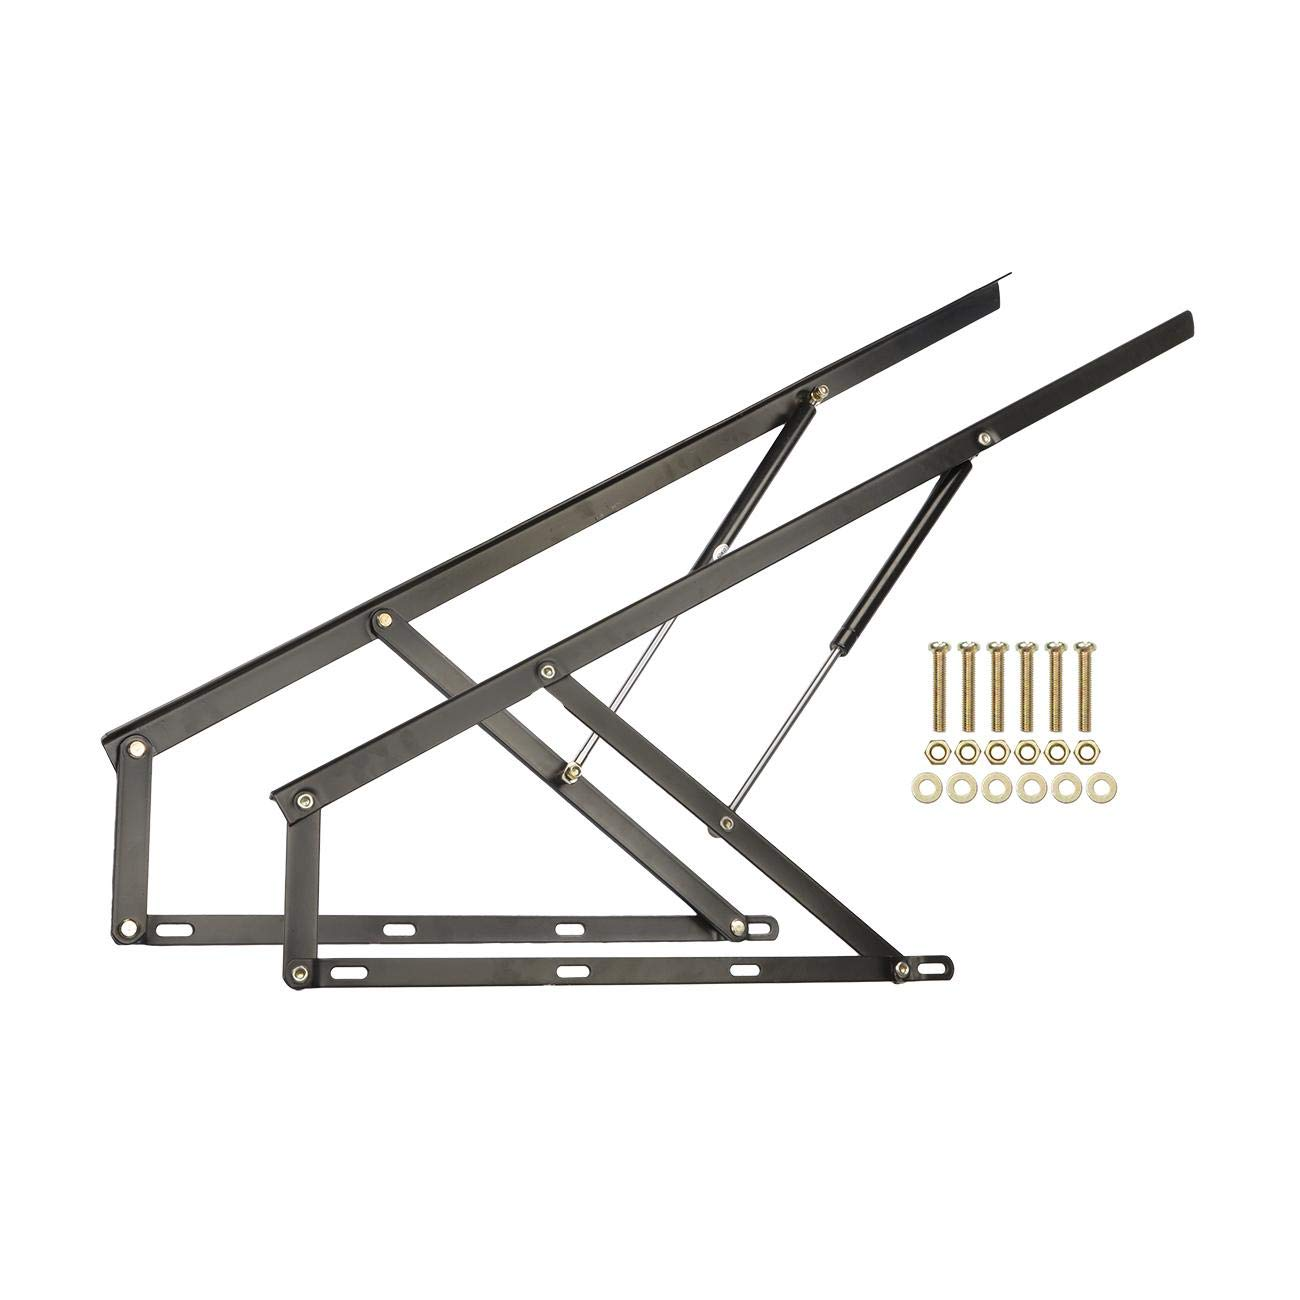 Dyna-Living A Pair Pneumatic Storage Bed Lift Mechanism Gas Spring Bed Storage Lift Kit for Box Bed Sofa Storage Space Saving DIY Project Lifter Lift Up Hardware, 1200mm by Dyna-Living